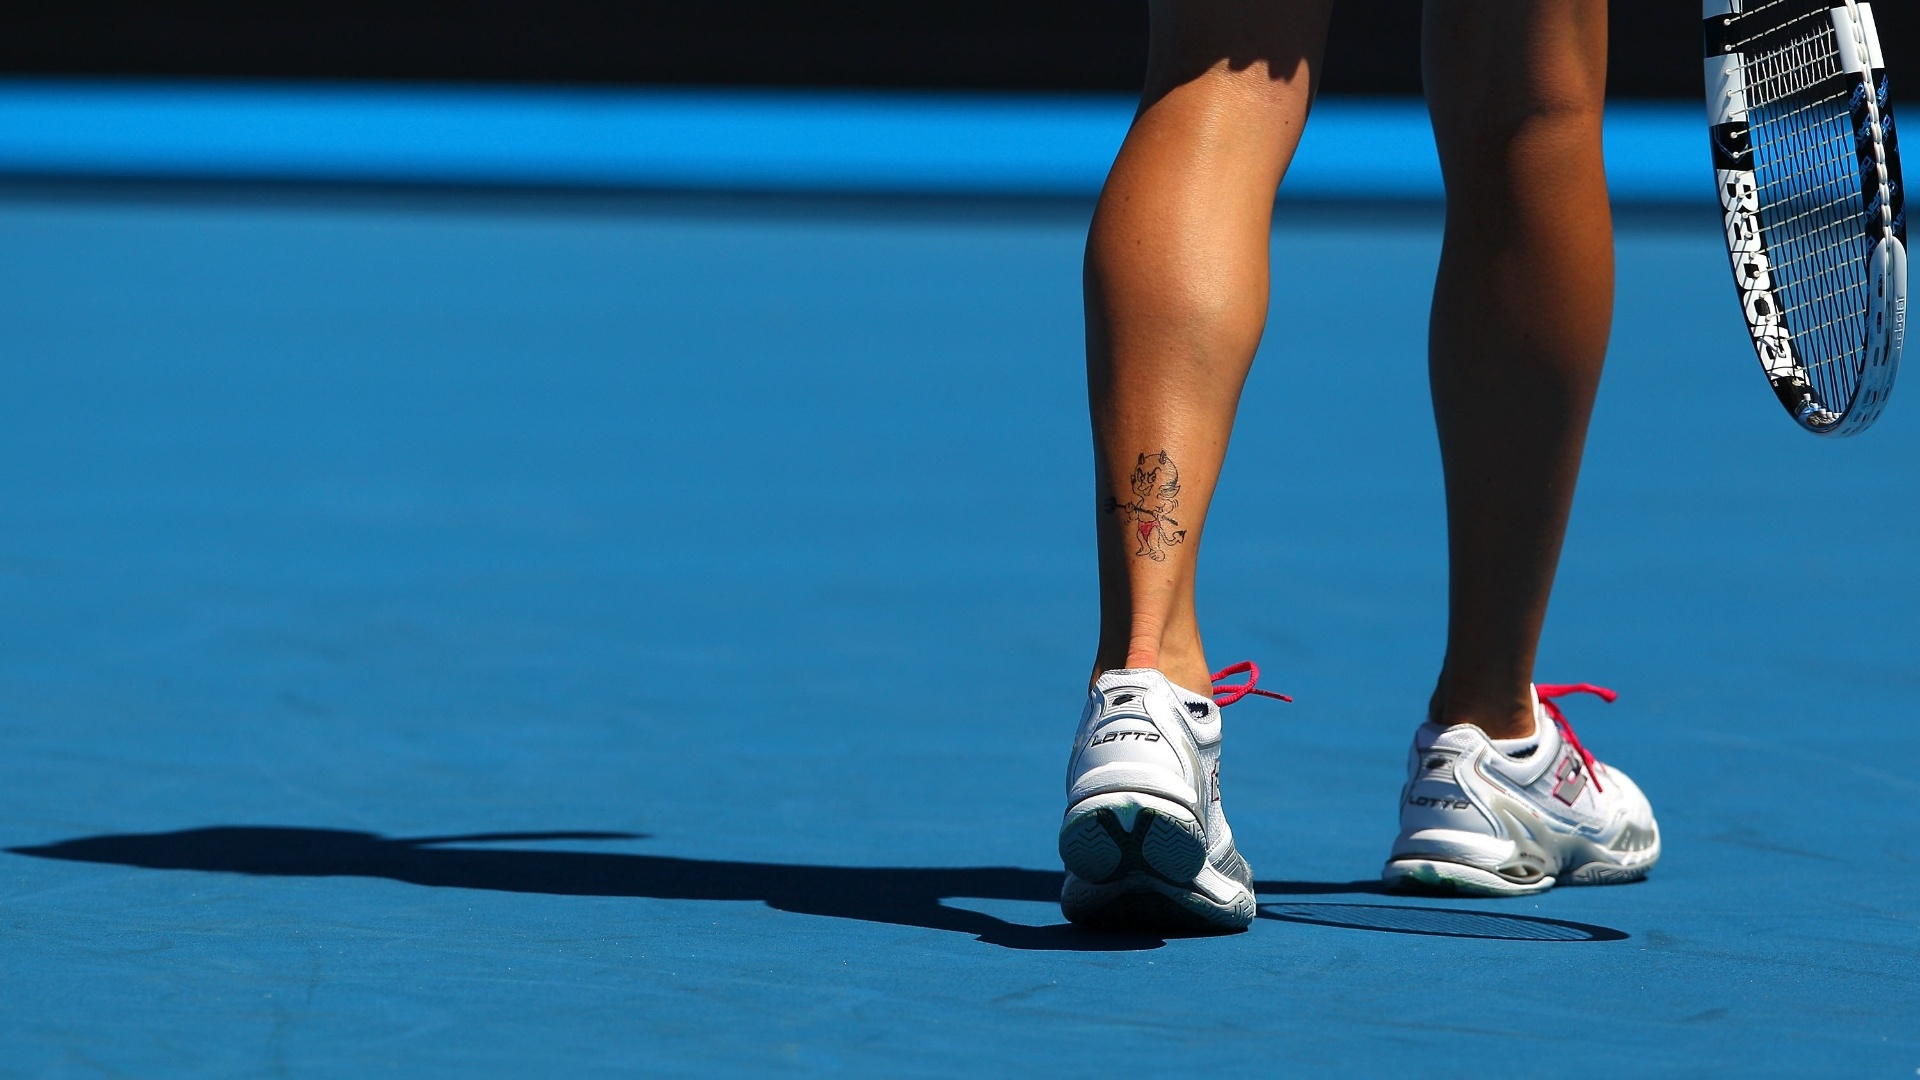 A tenista polonesa Agnieszka Radwanska tem tatuado um diabinho em sua perna esquerda